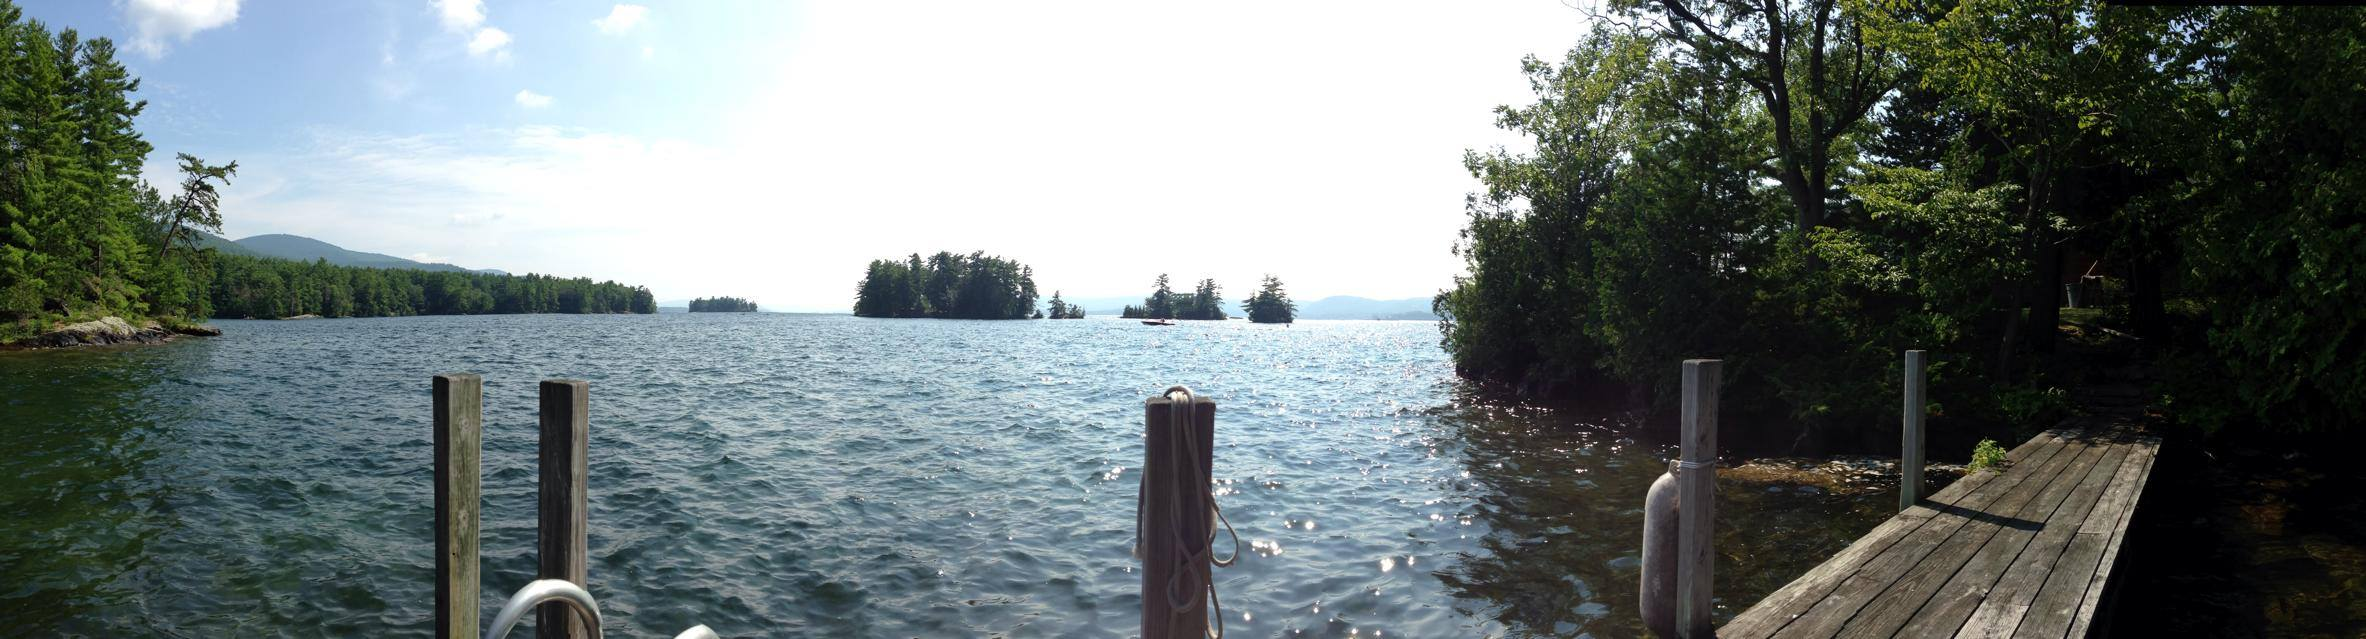 lake george from the little dock_w.sherman.8.14